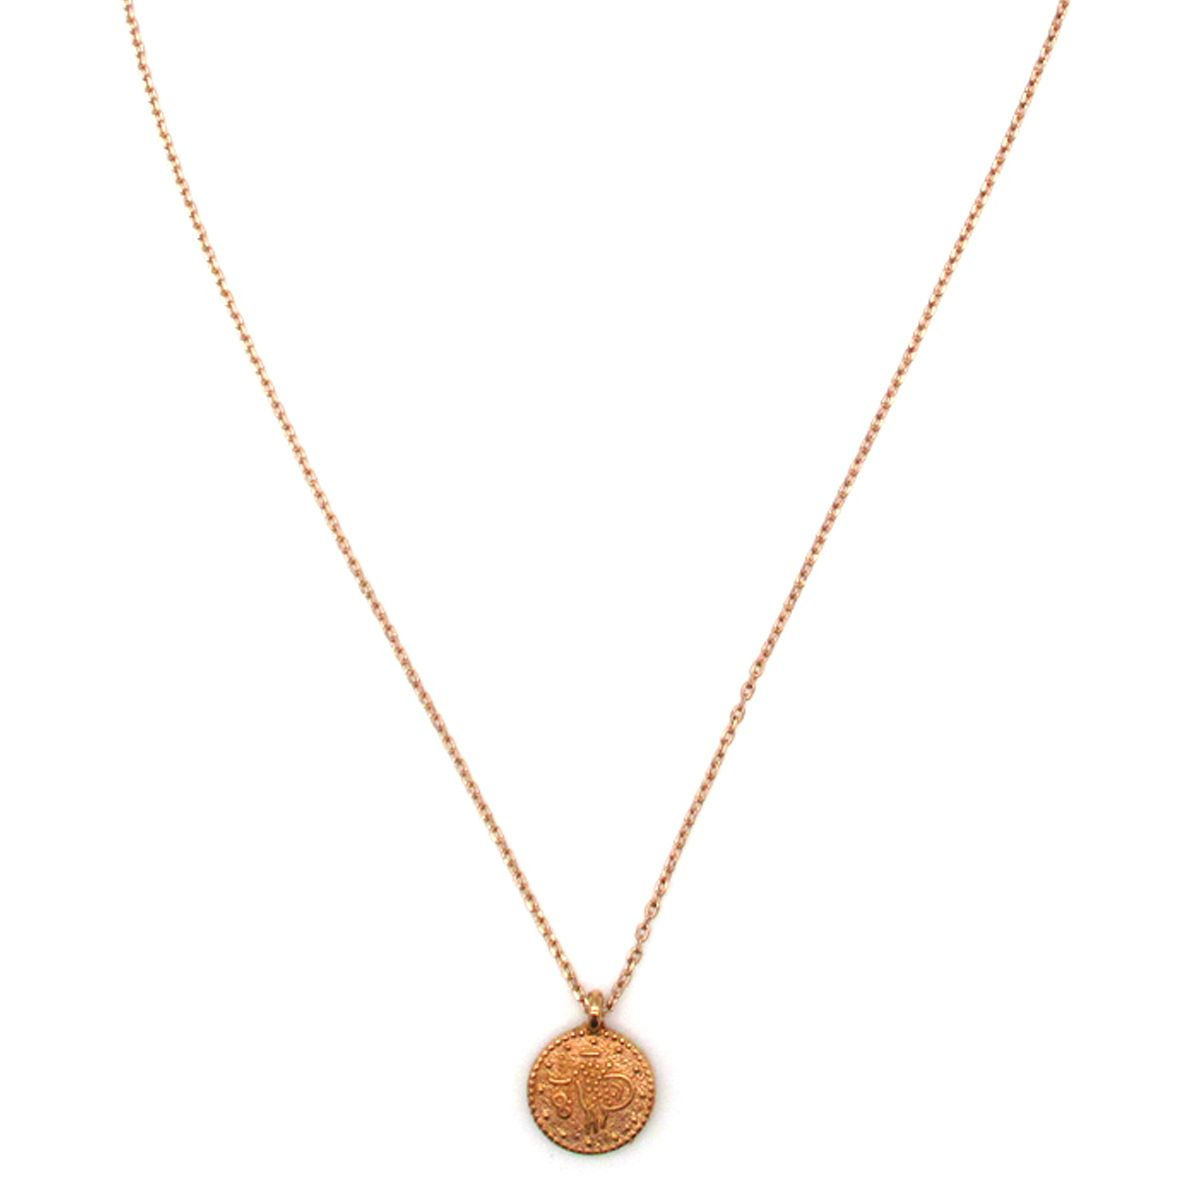 Cleopatra coin charm necklace